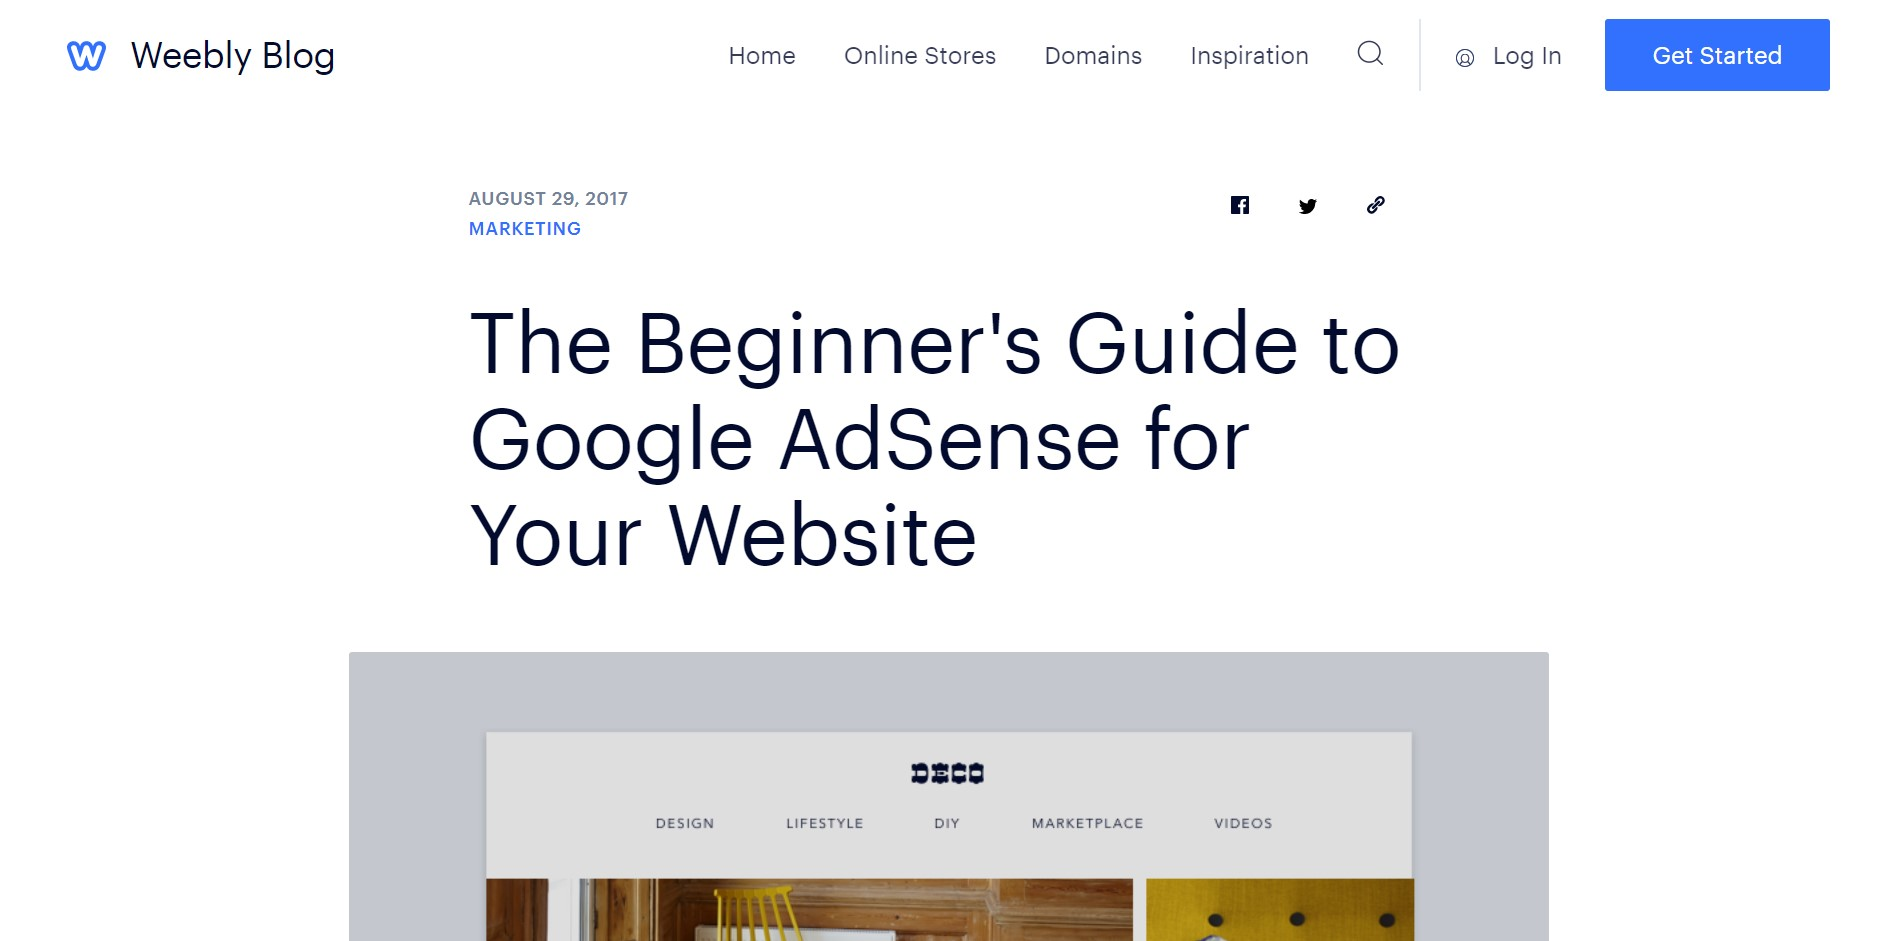 Best Google AdSense Courses and Guides in 2019 (Free and Paid)